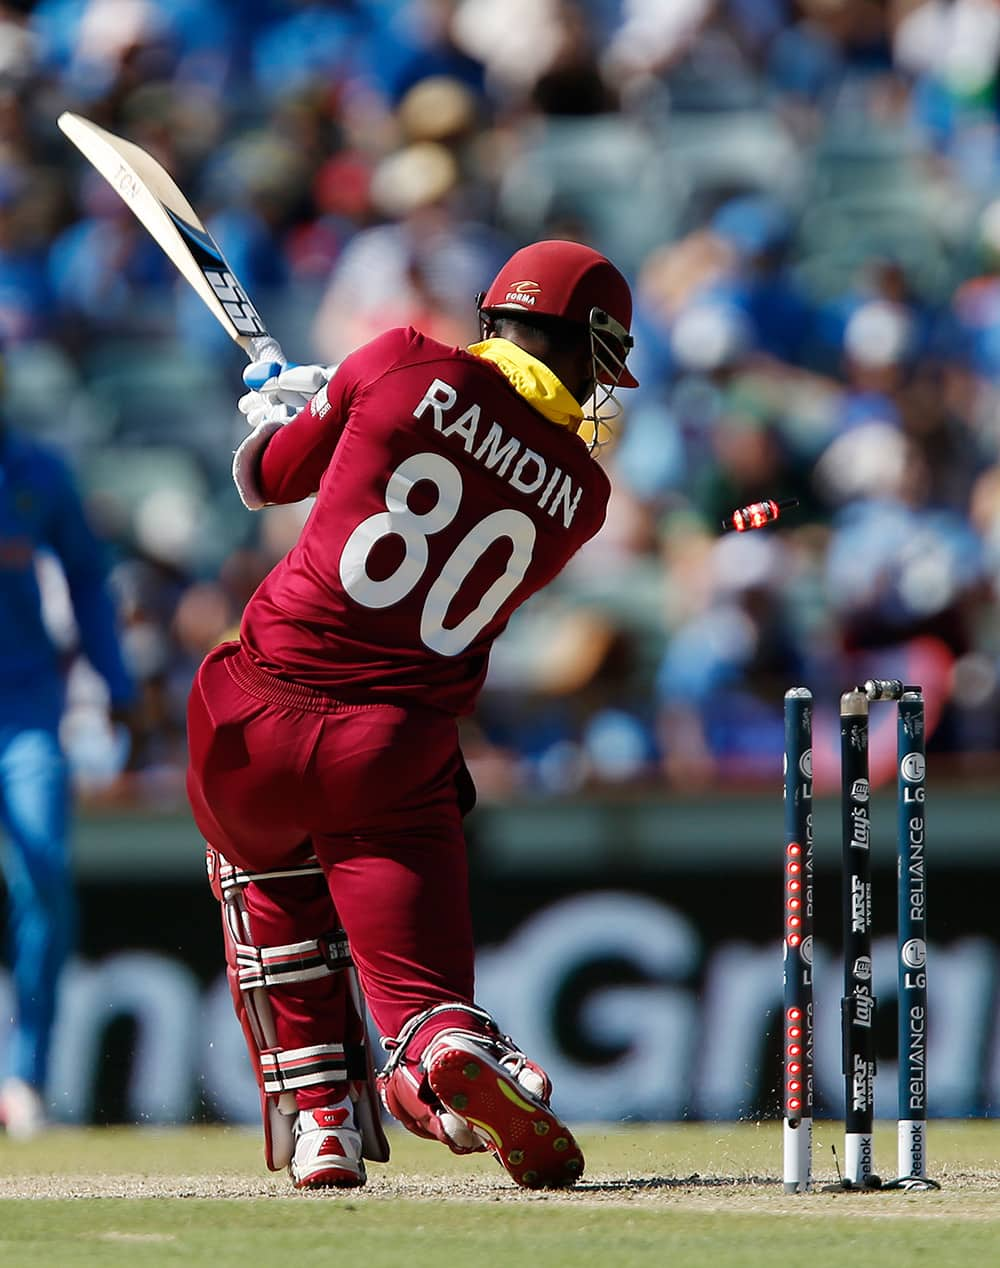 West Indies batsman Denesh Ramdin is bowled for no score during their Cricket World Cup Pool B match against India in Perth, Australia.